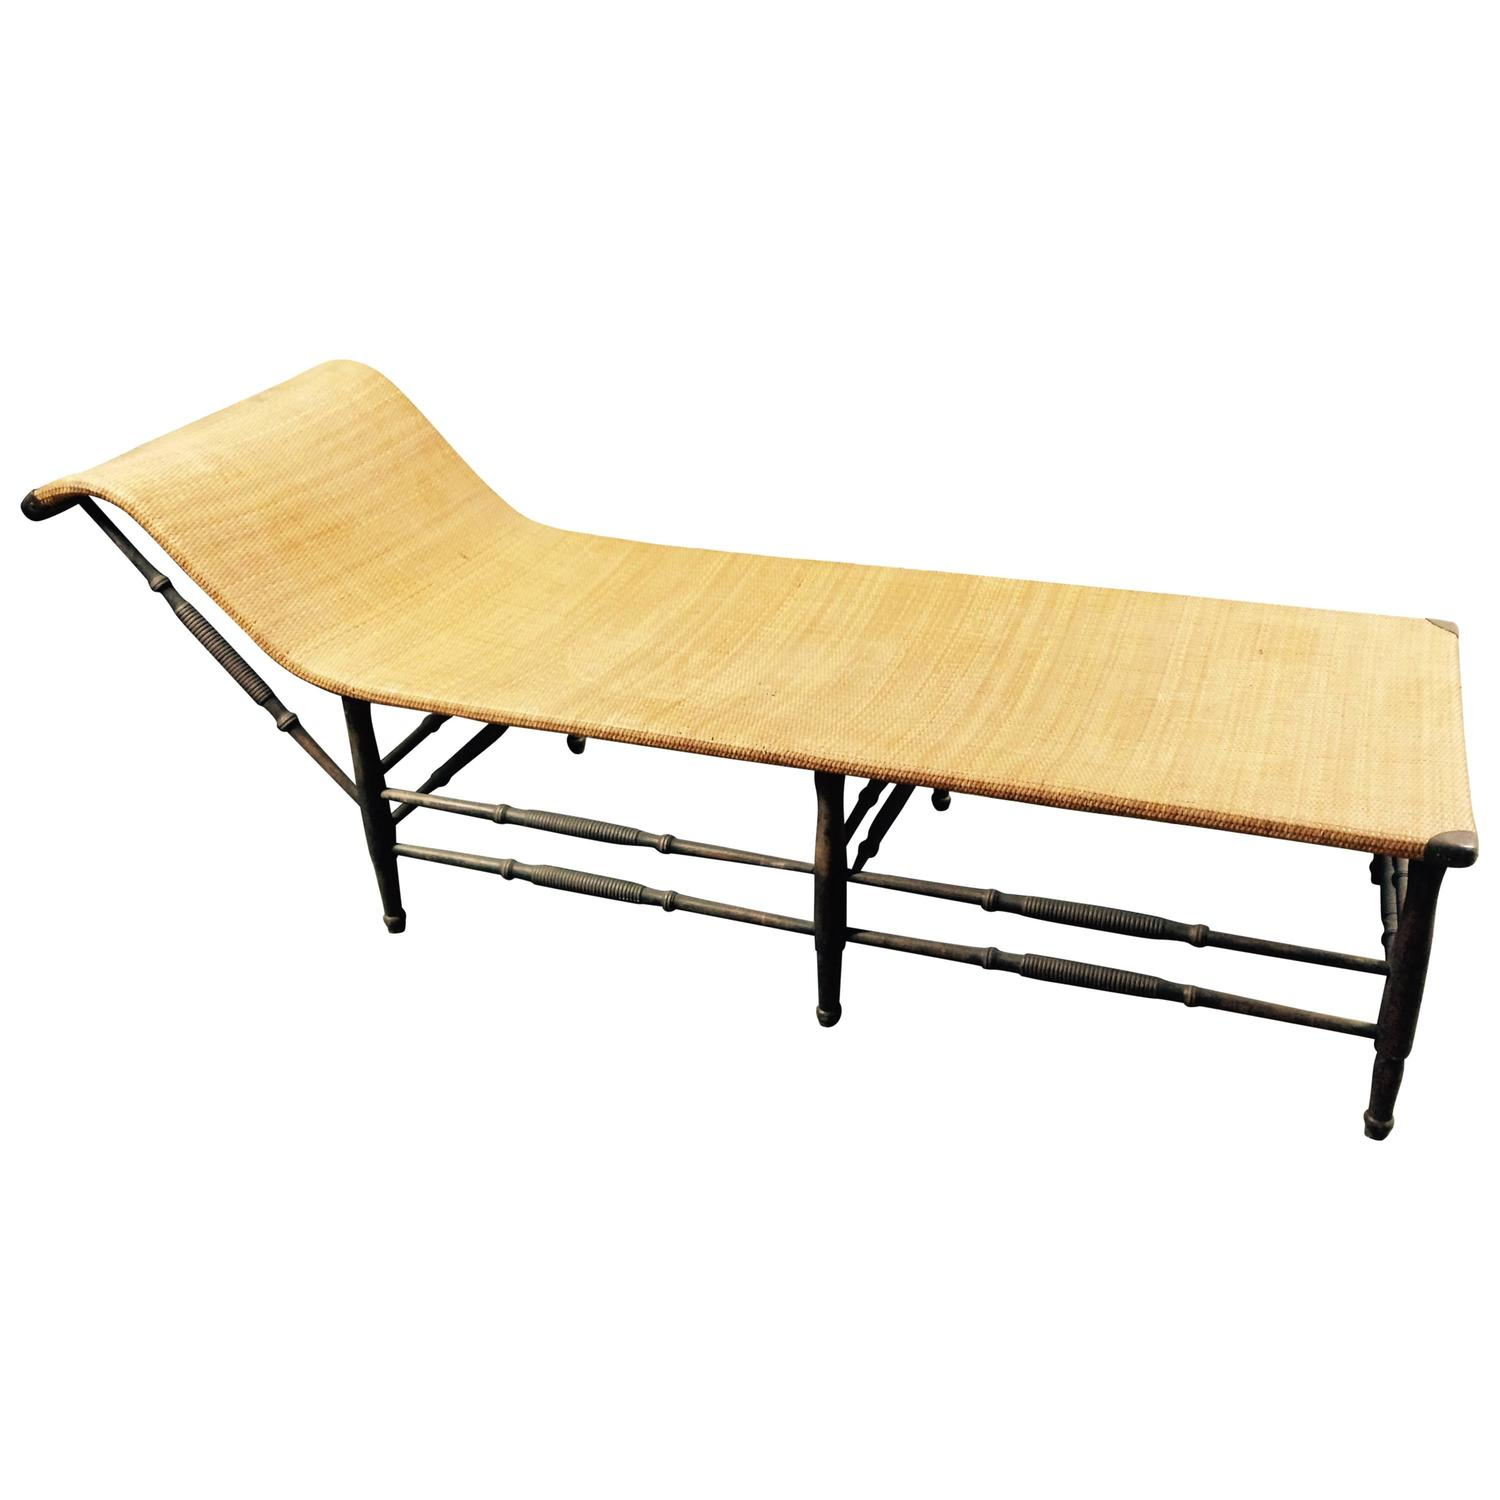 Antique rattan chaise longue for sale at 1stdibs for Cane chaise longue